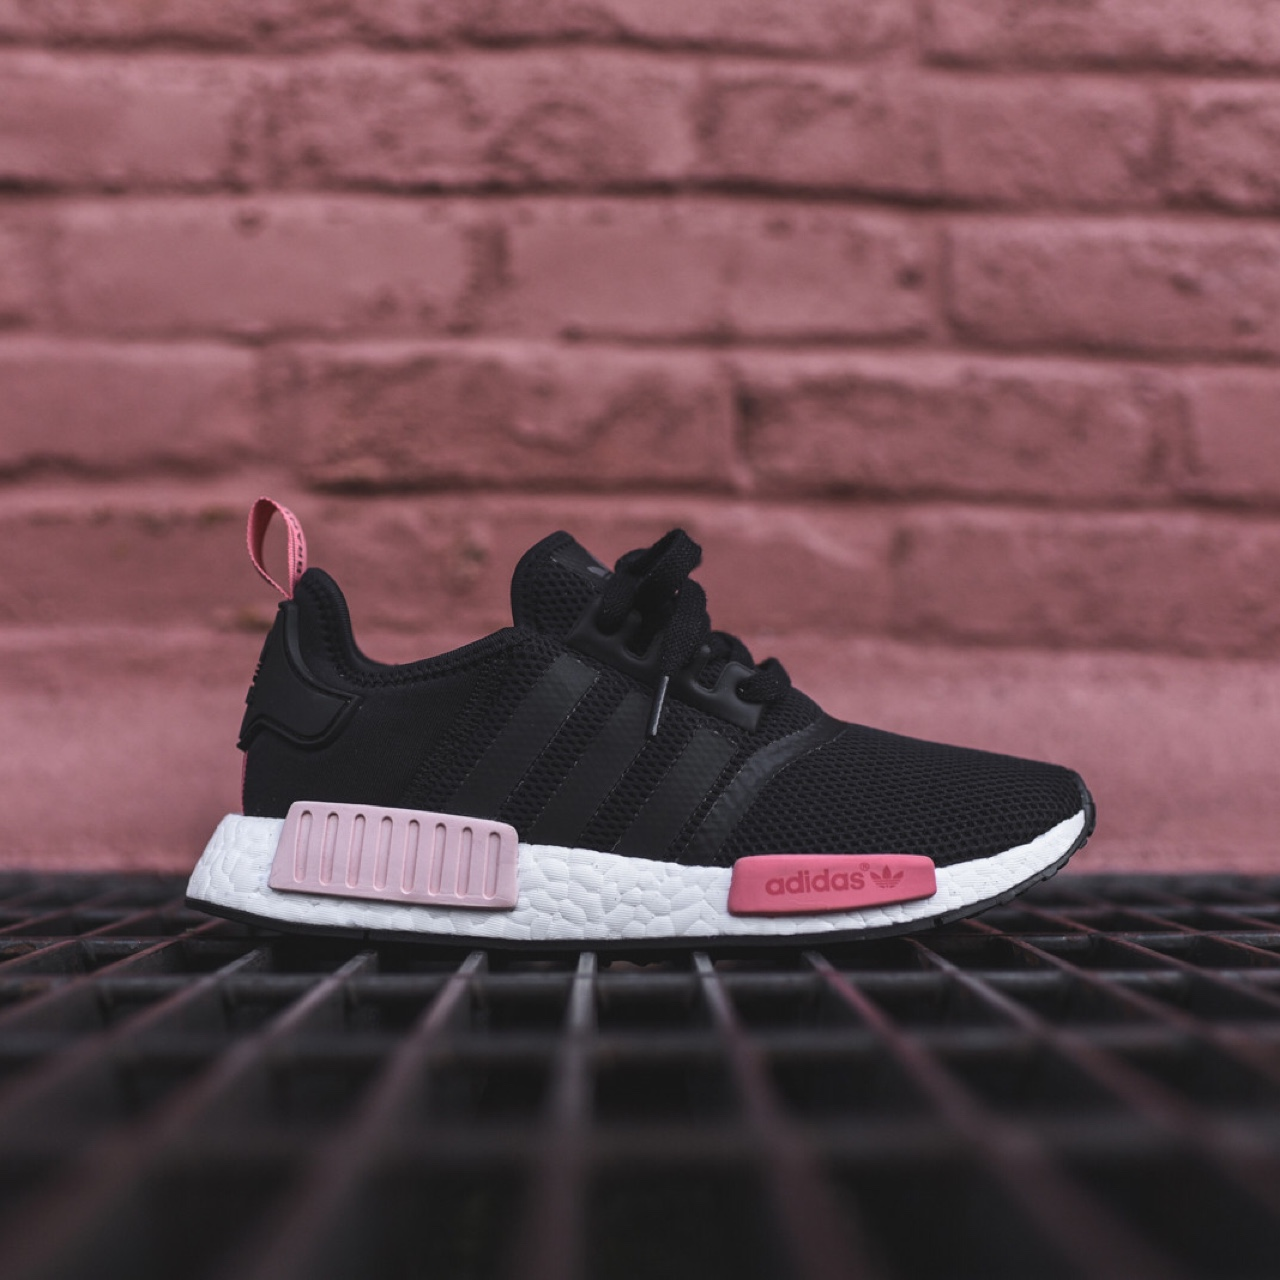 lowest price e25f1 120c8 ADIDAS NMD RUNNER CORE BLACK PEACH PINK - new ...